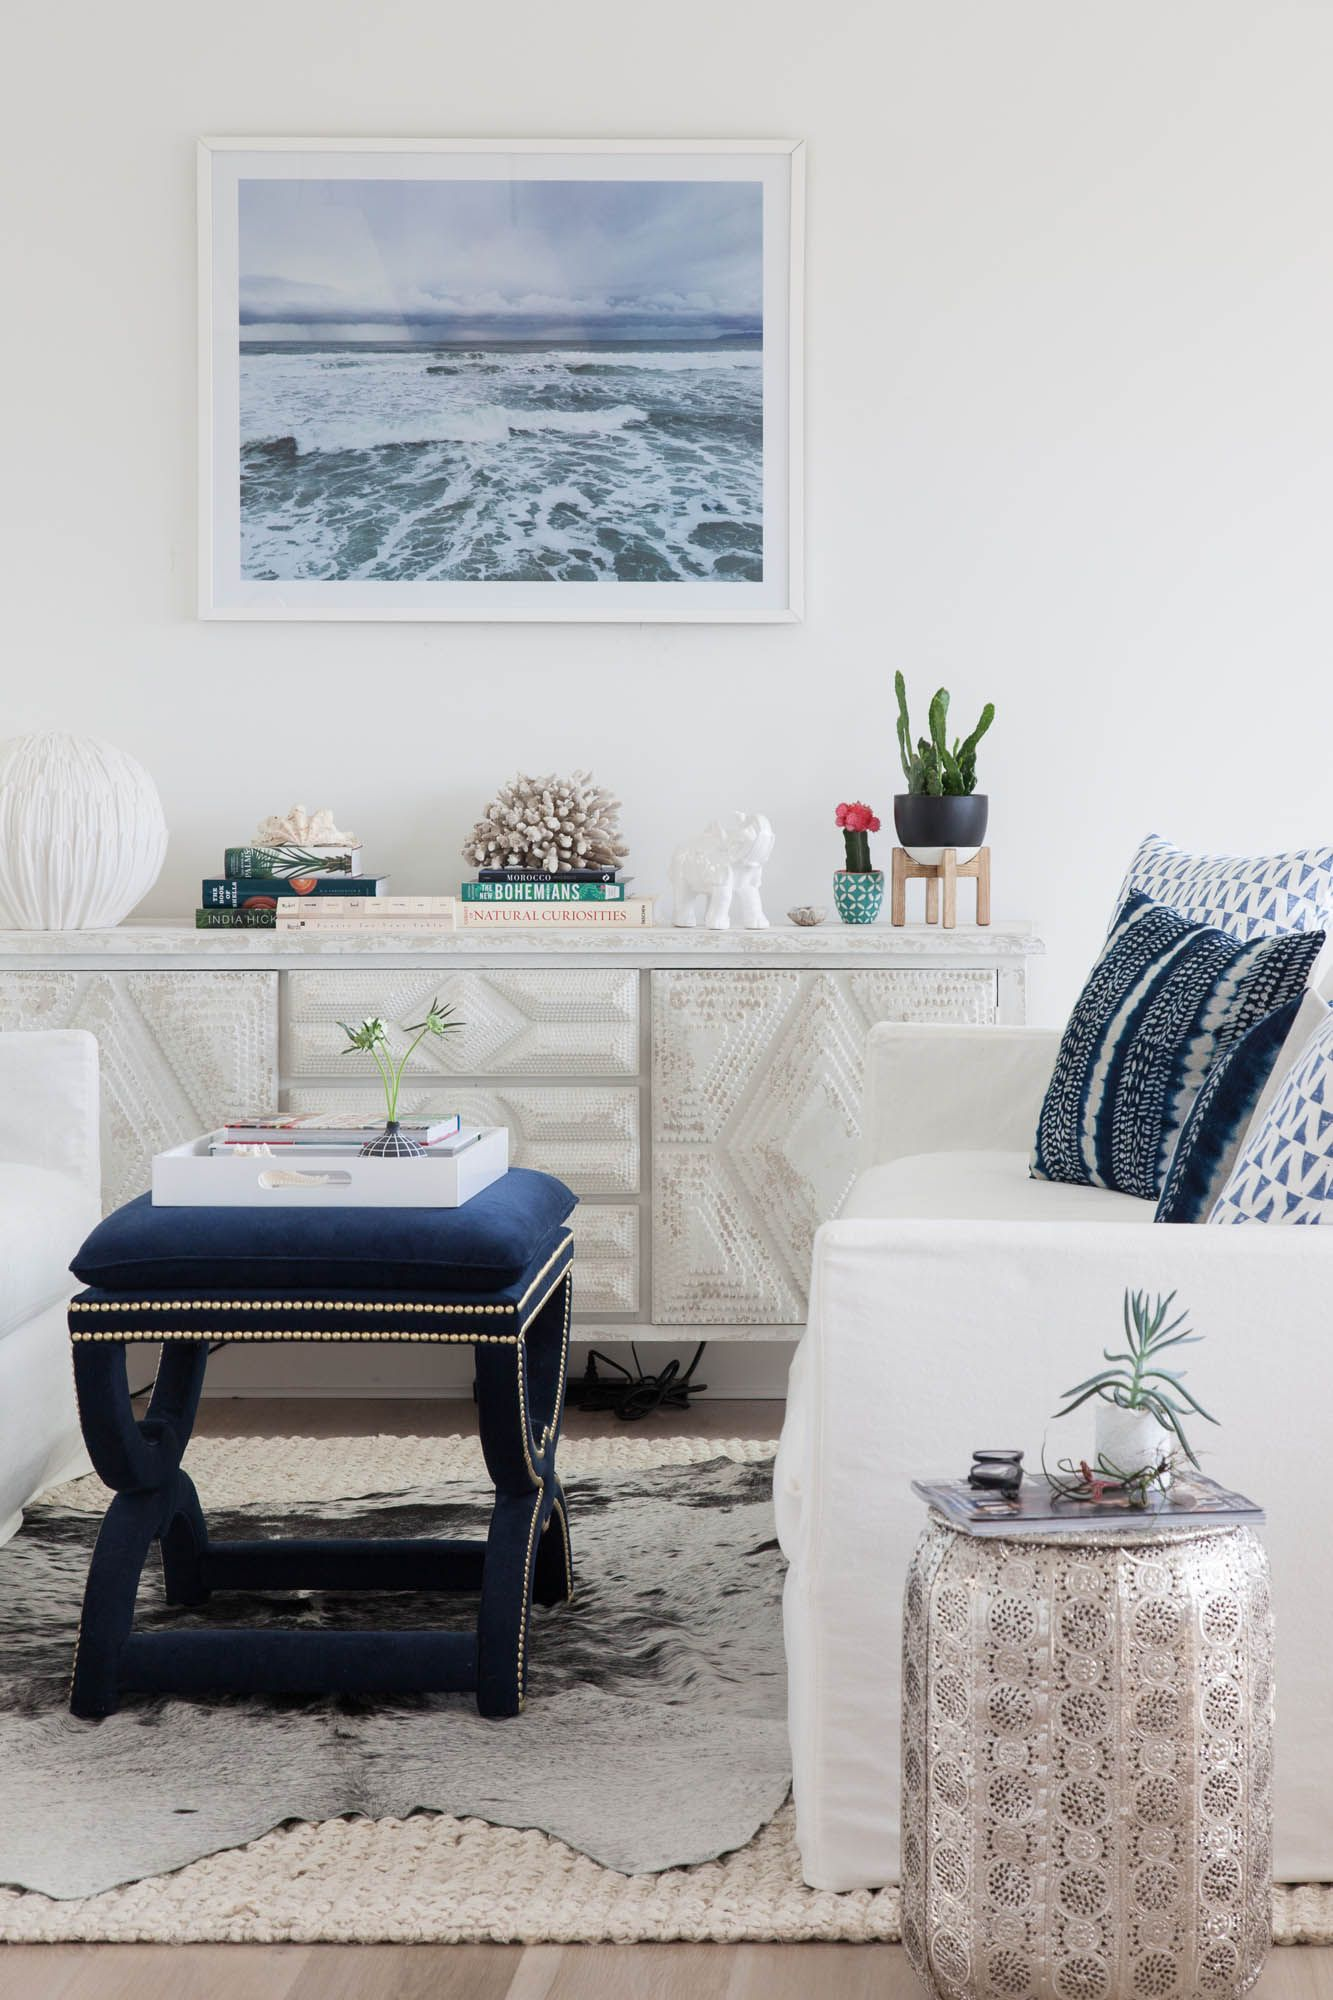 A Florida Vacation Home Inspired by Morocco and India   Rue   Living ...